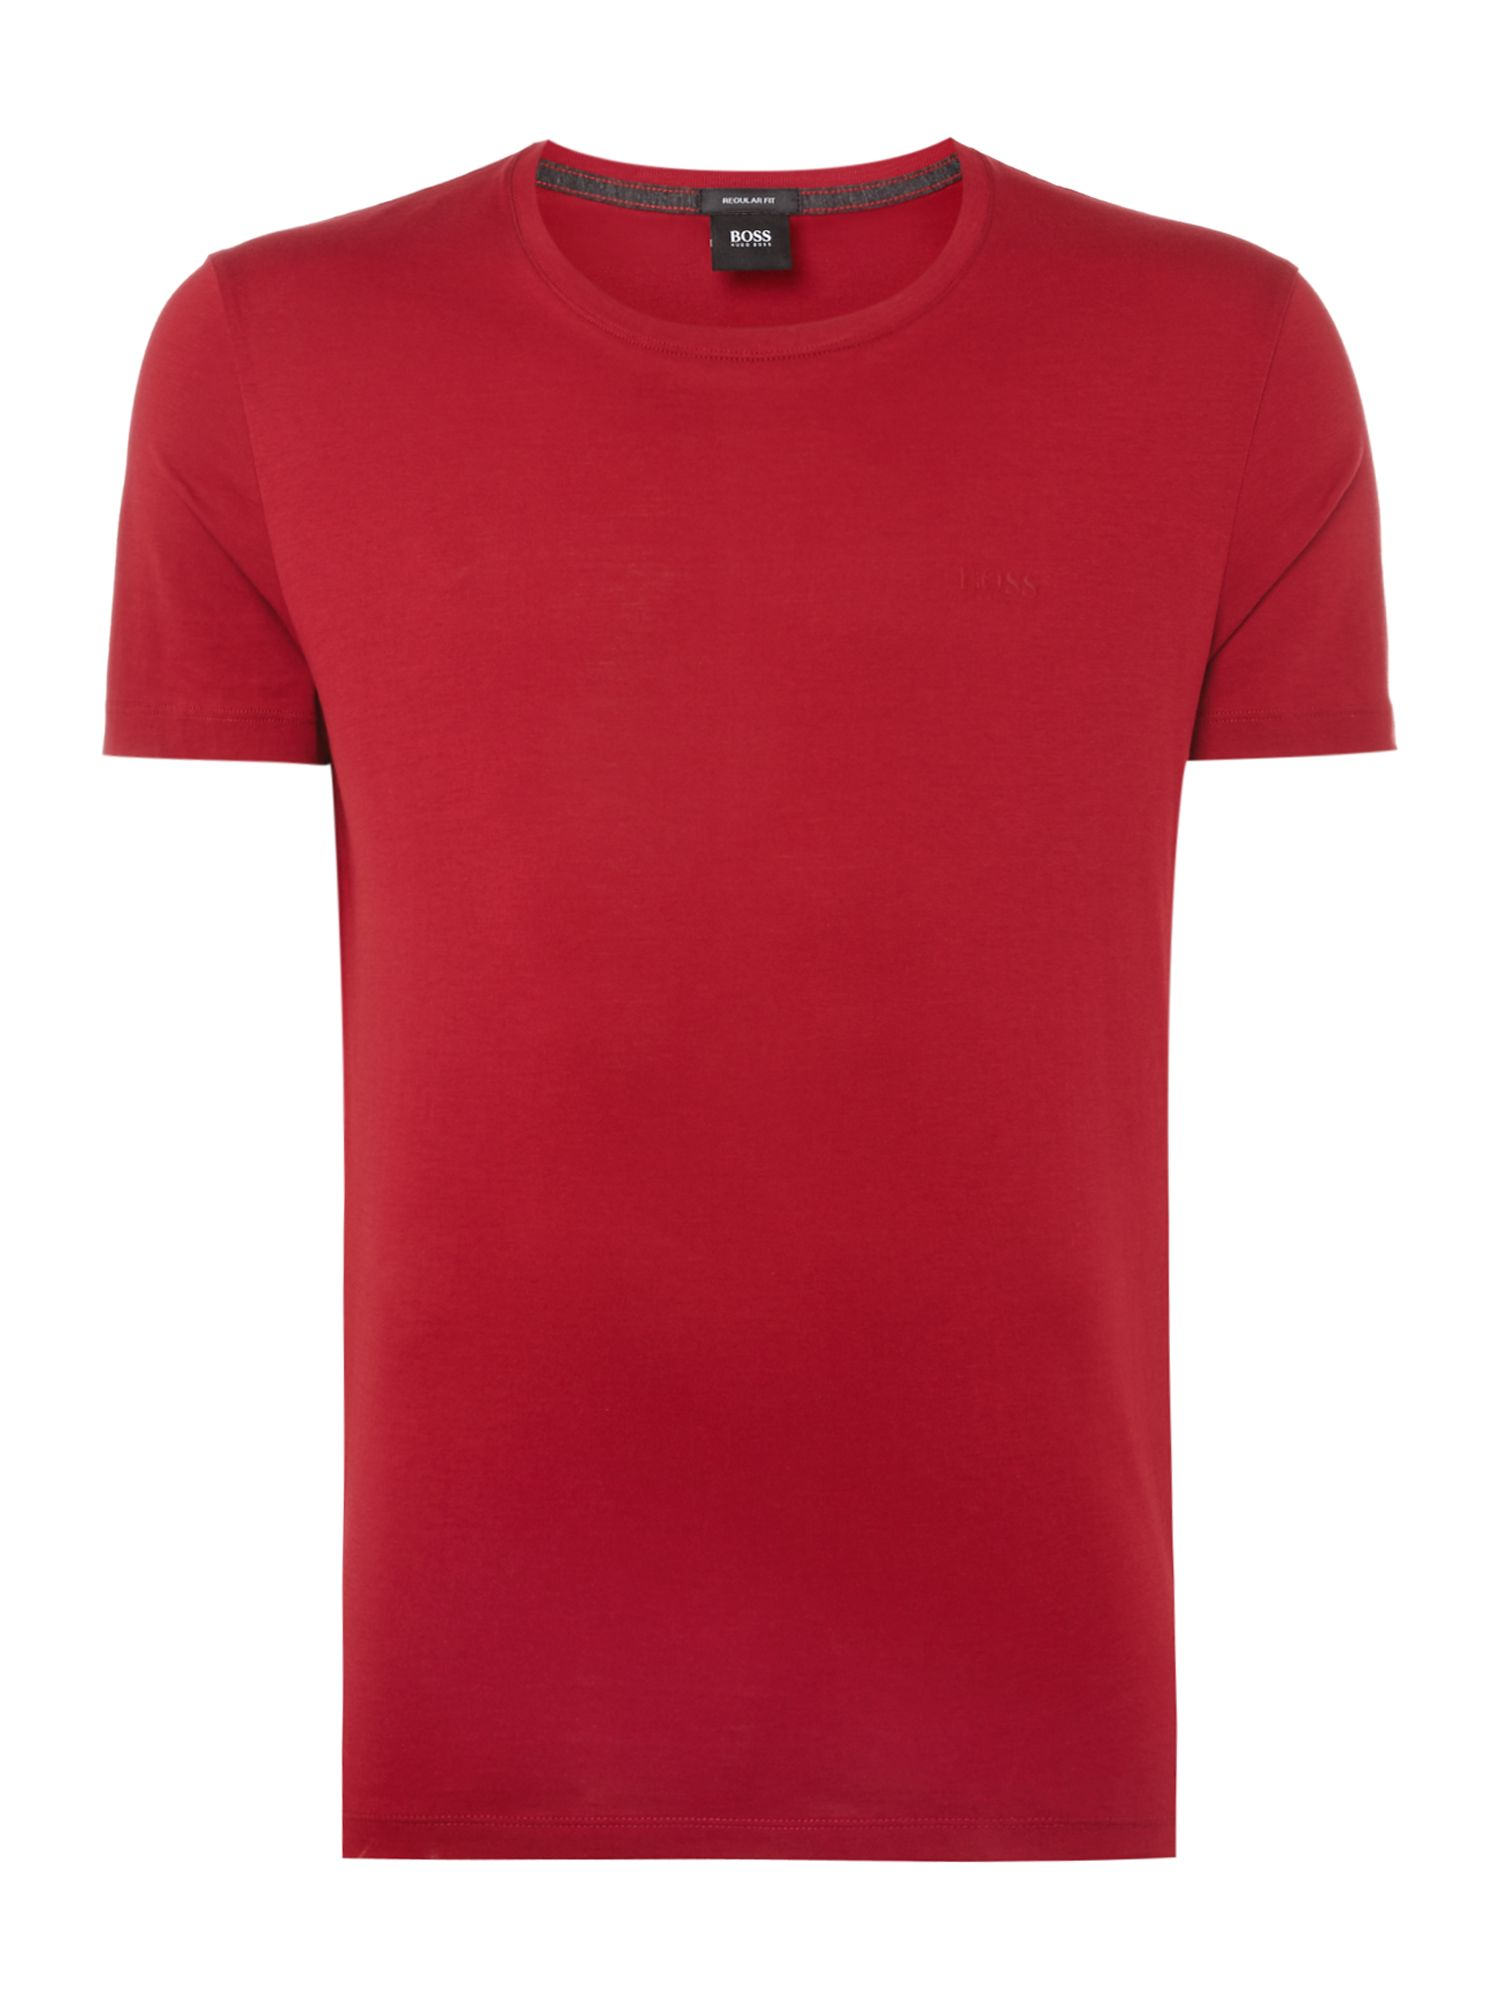 Men's Hugo Boss Logo Regular Fit T-Shirt, Red